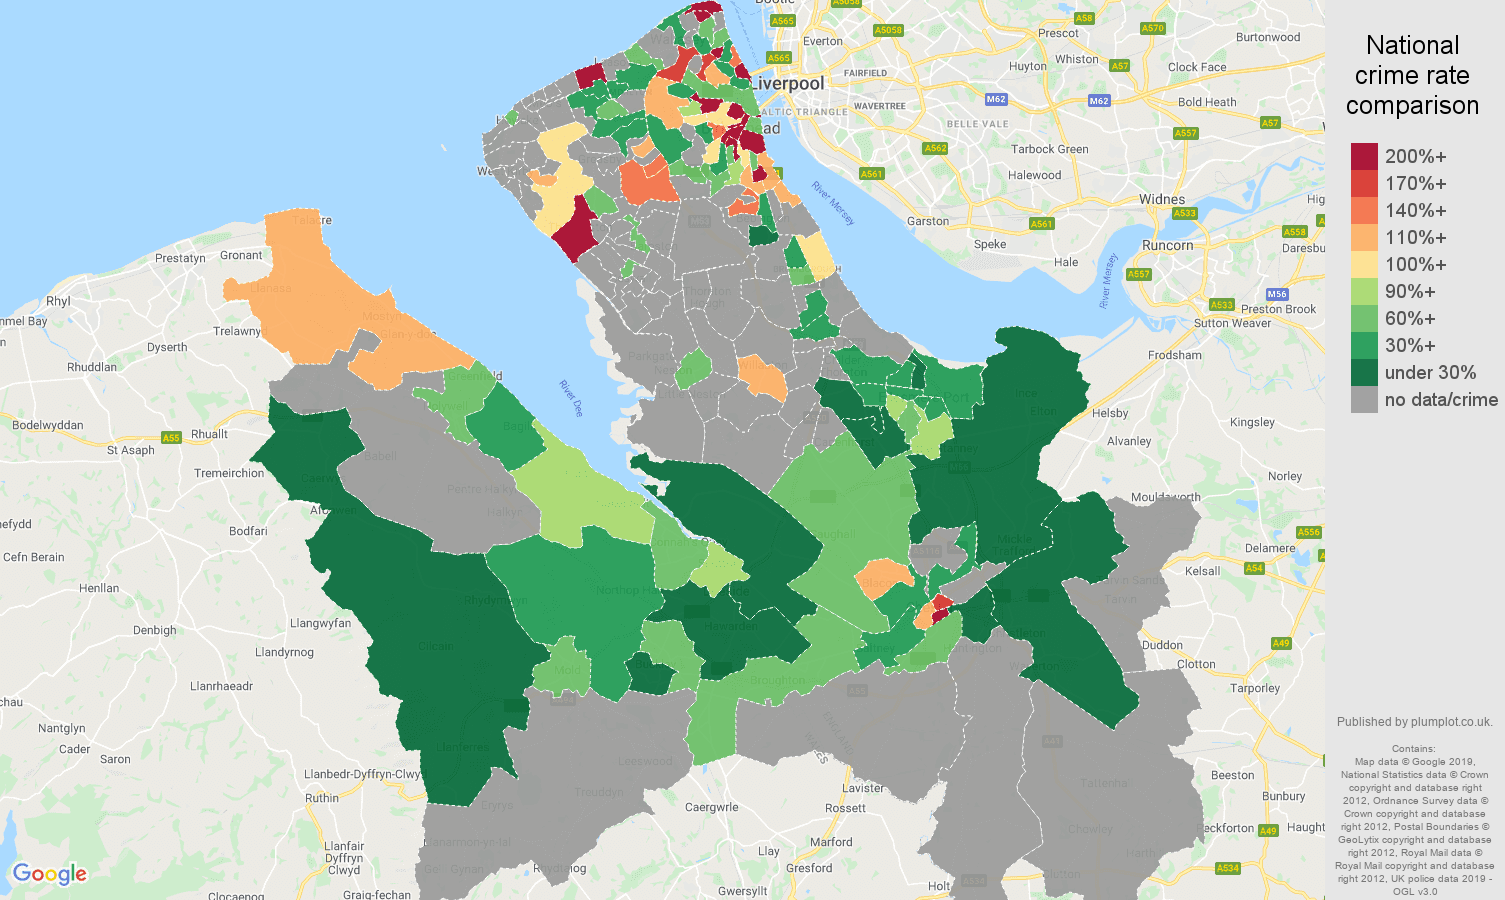 Chester possession of weapons crime rate comparison map